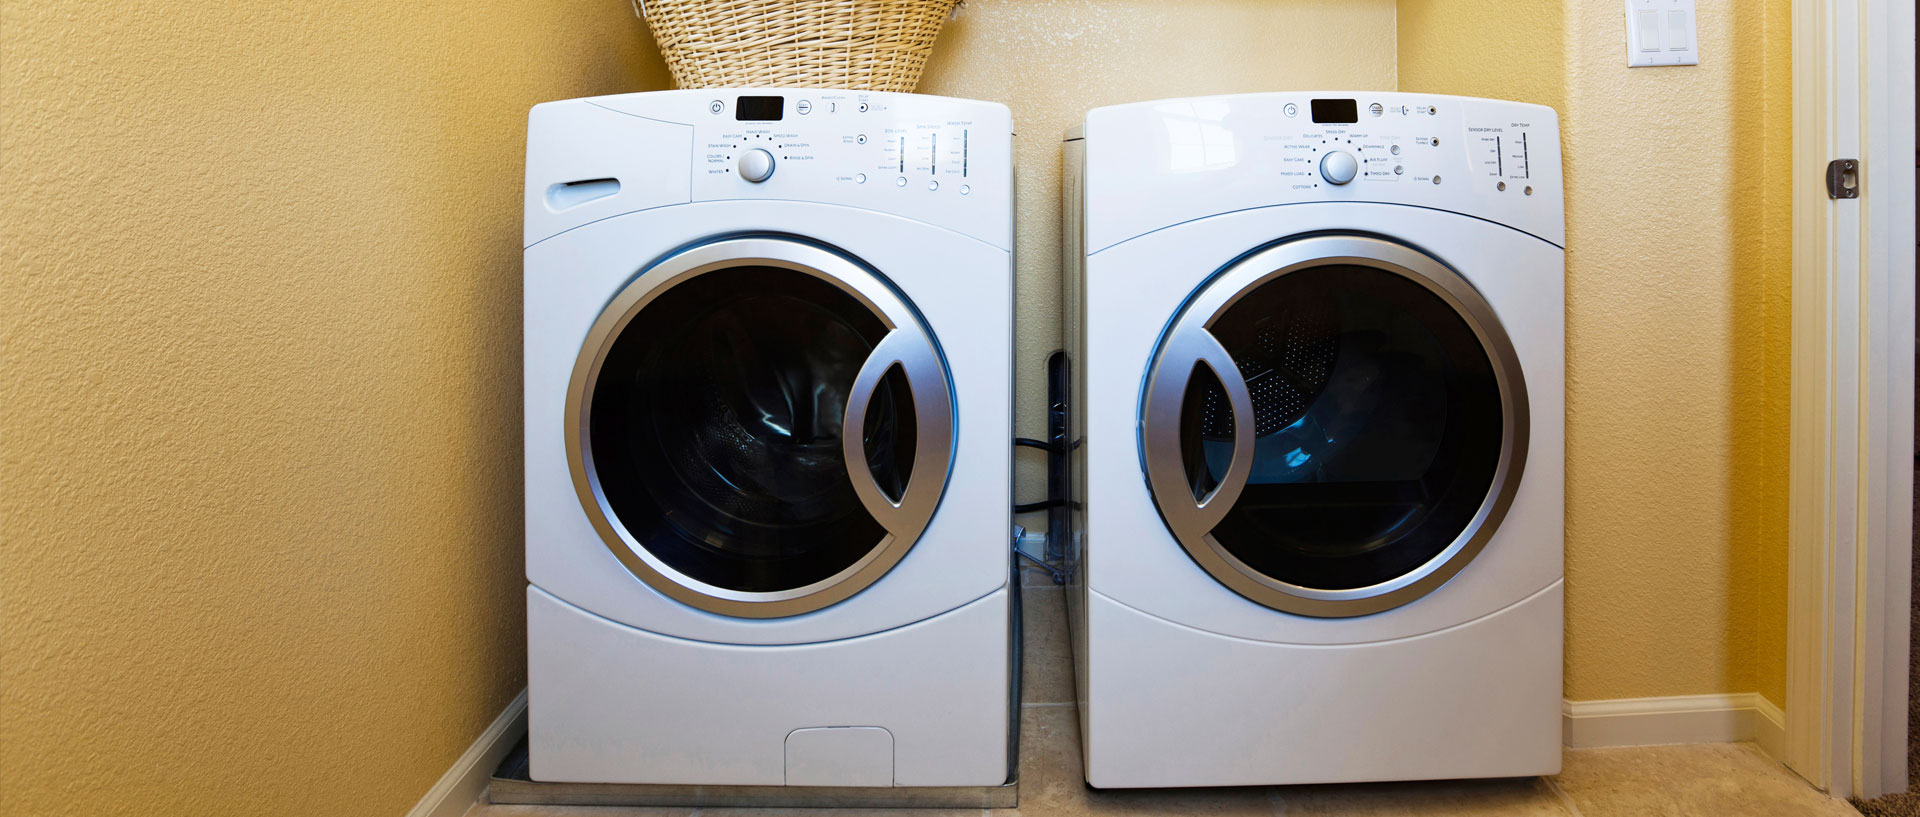 Washer And Dryer ~ Washer and dryer sets that match your budget consumer